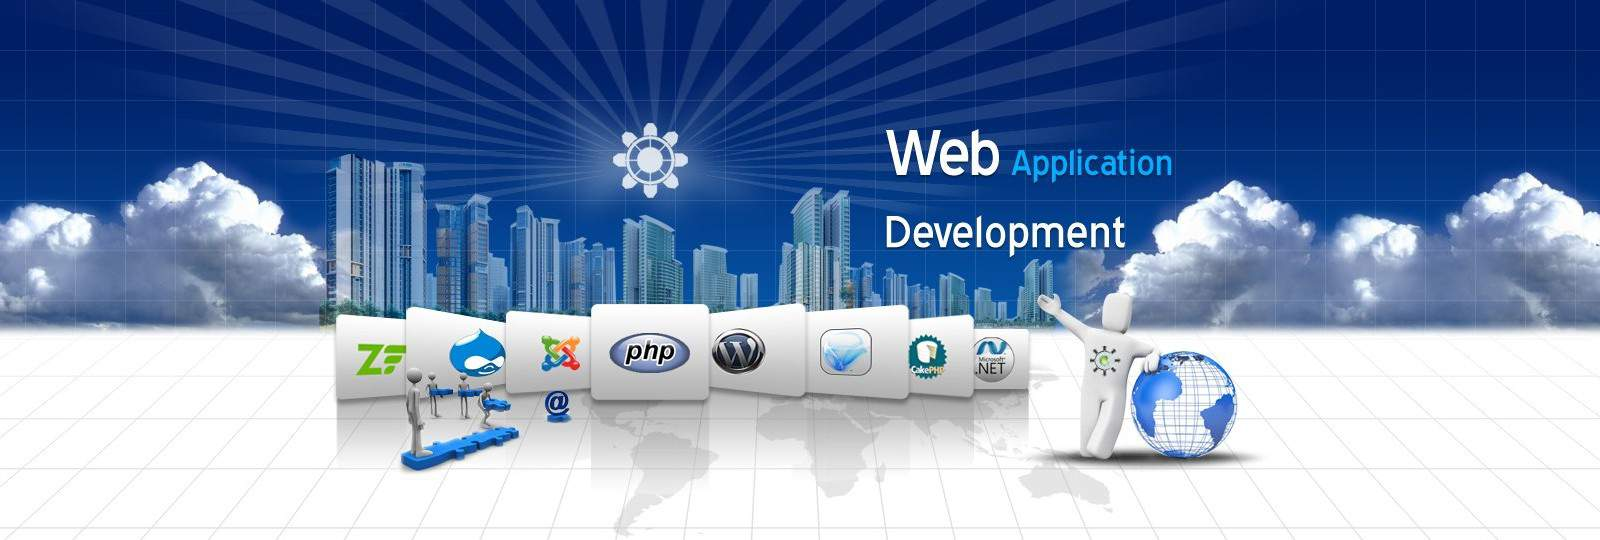 Web Development Company in Punjab and Chandigarh